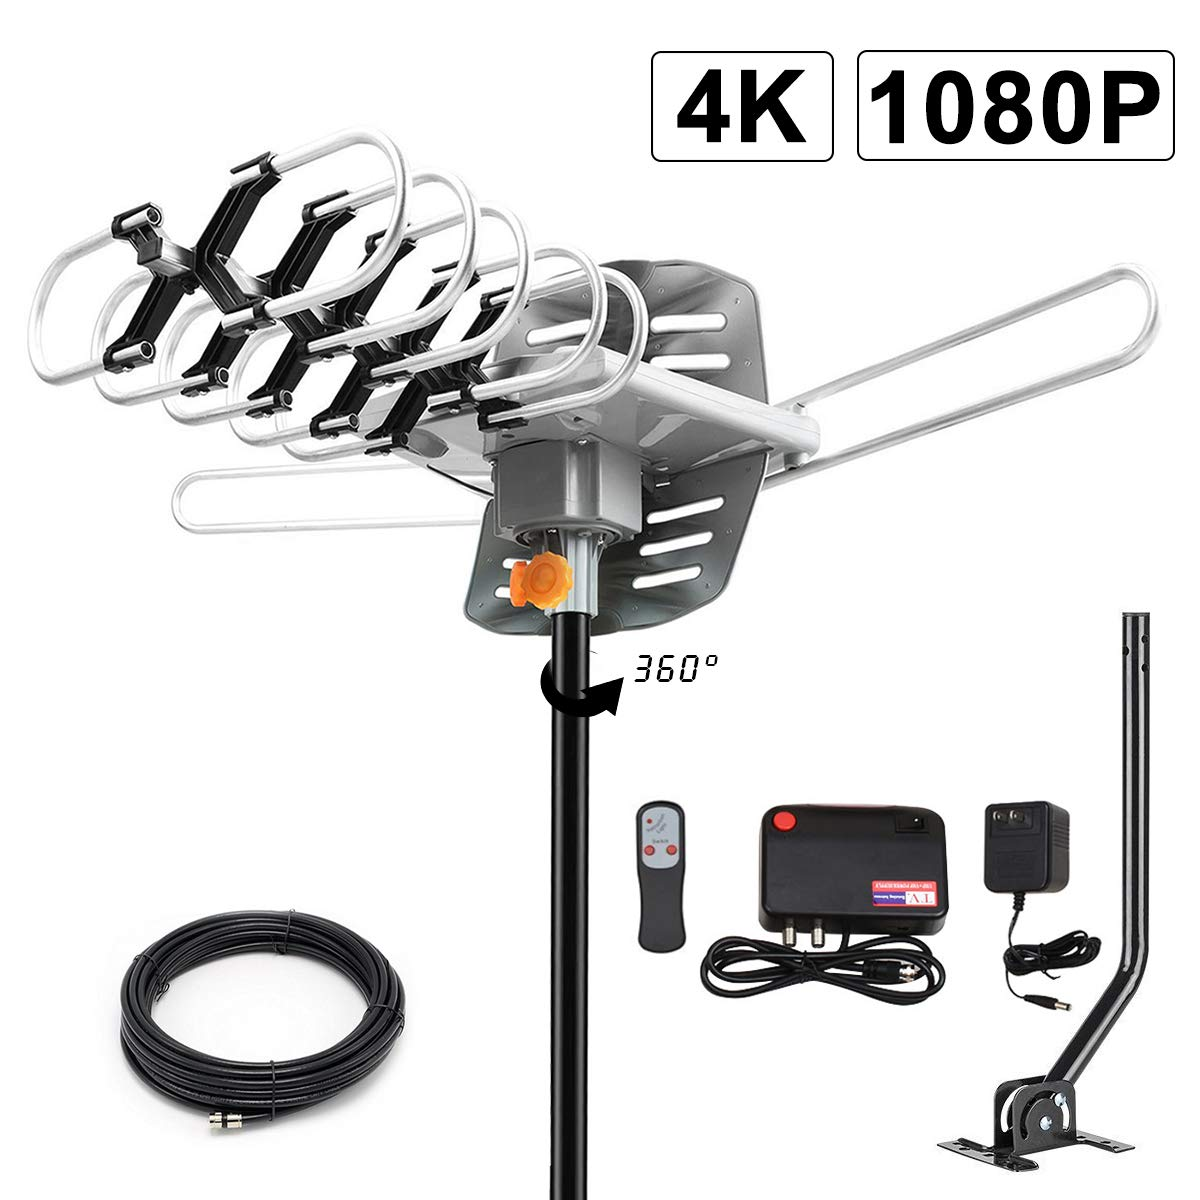 2019 Version HDTV Antenna Amplified Digital Outdoor Antenna -150 Miles Range-360 Degree Rotation Wireless Remote-Snap- Wireless Remote Control - UHF/VHF 4K 1080P Channels- On Installation Support 2 TV by BEFORE